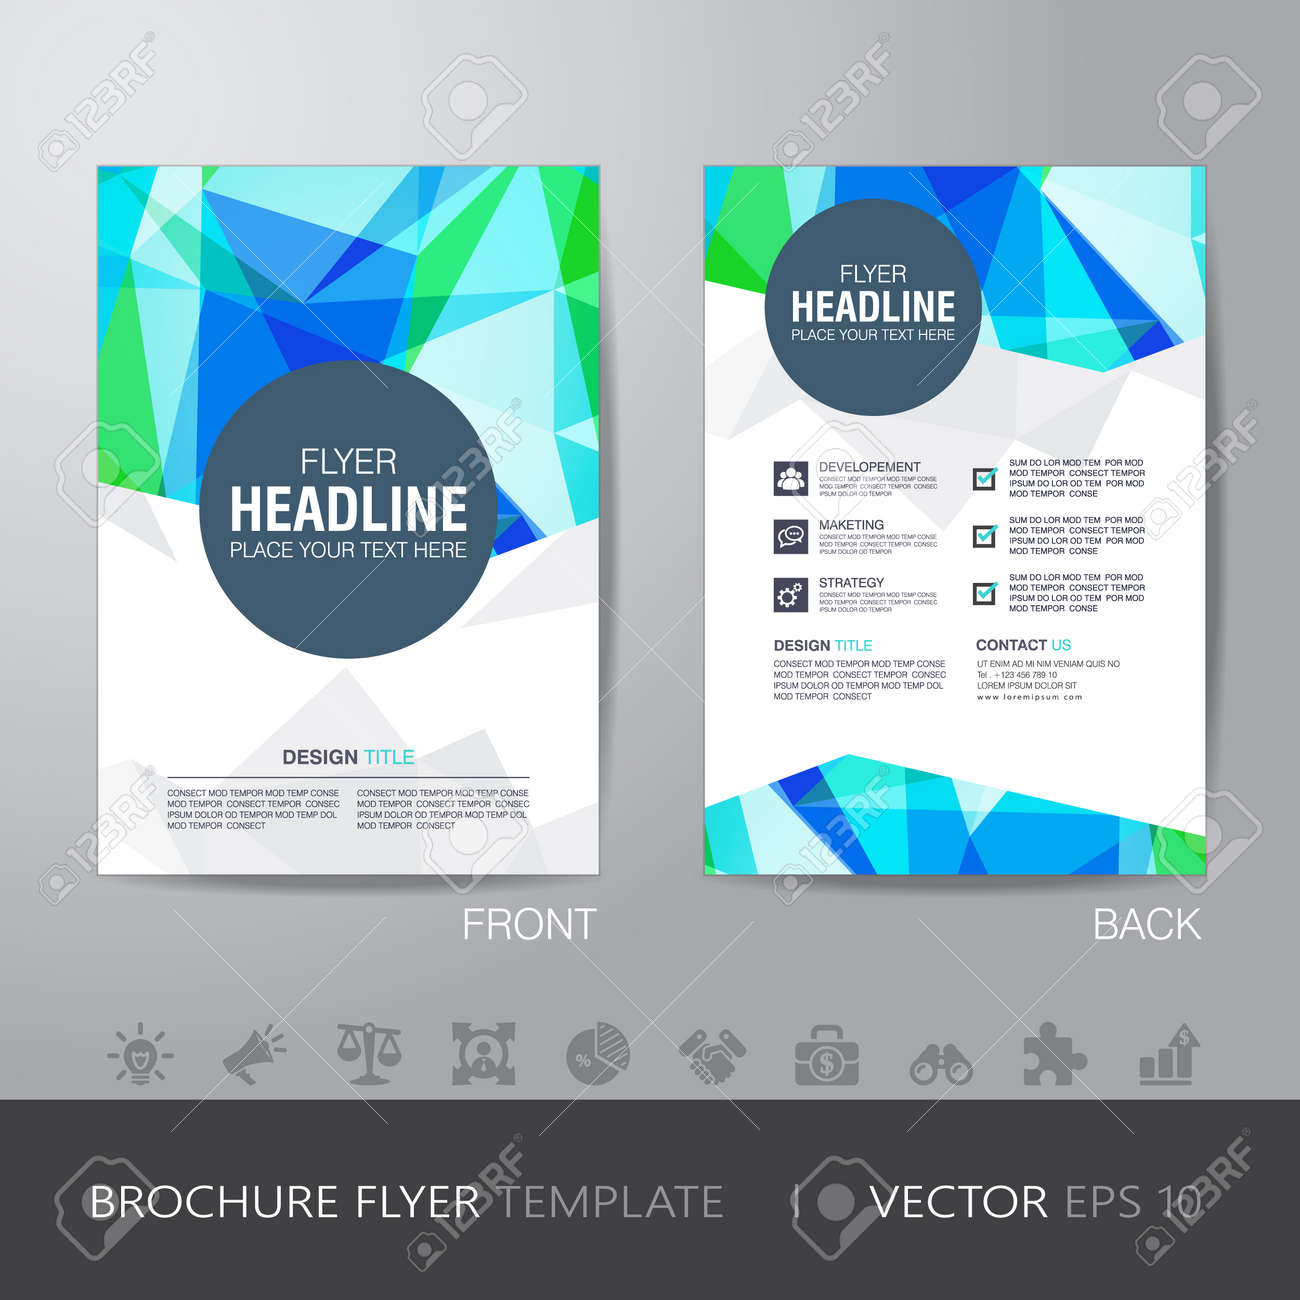 Polygon Brochure Flyer Design Layout Template In A4 Size, With ...